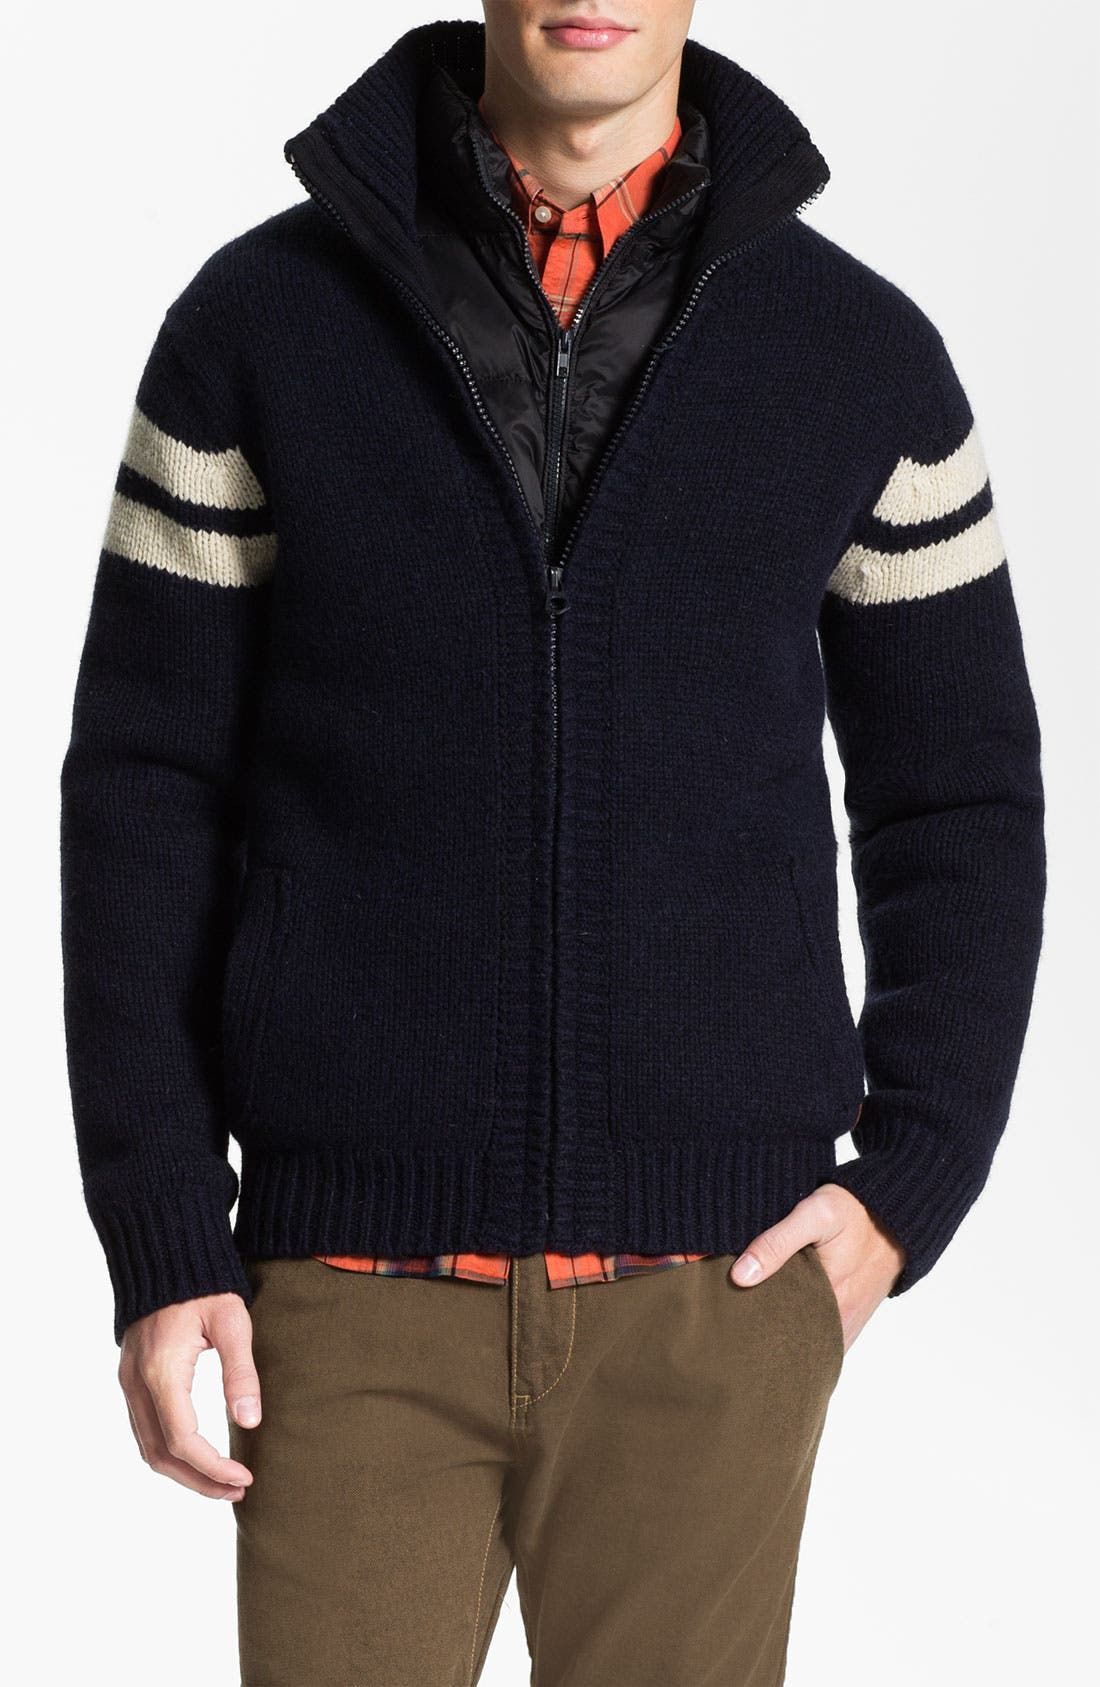 Main Image - Scotch & Soda Wool Blend Cardigan with Optional Down Liner